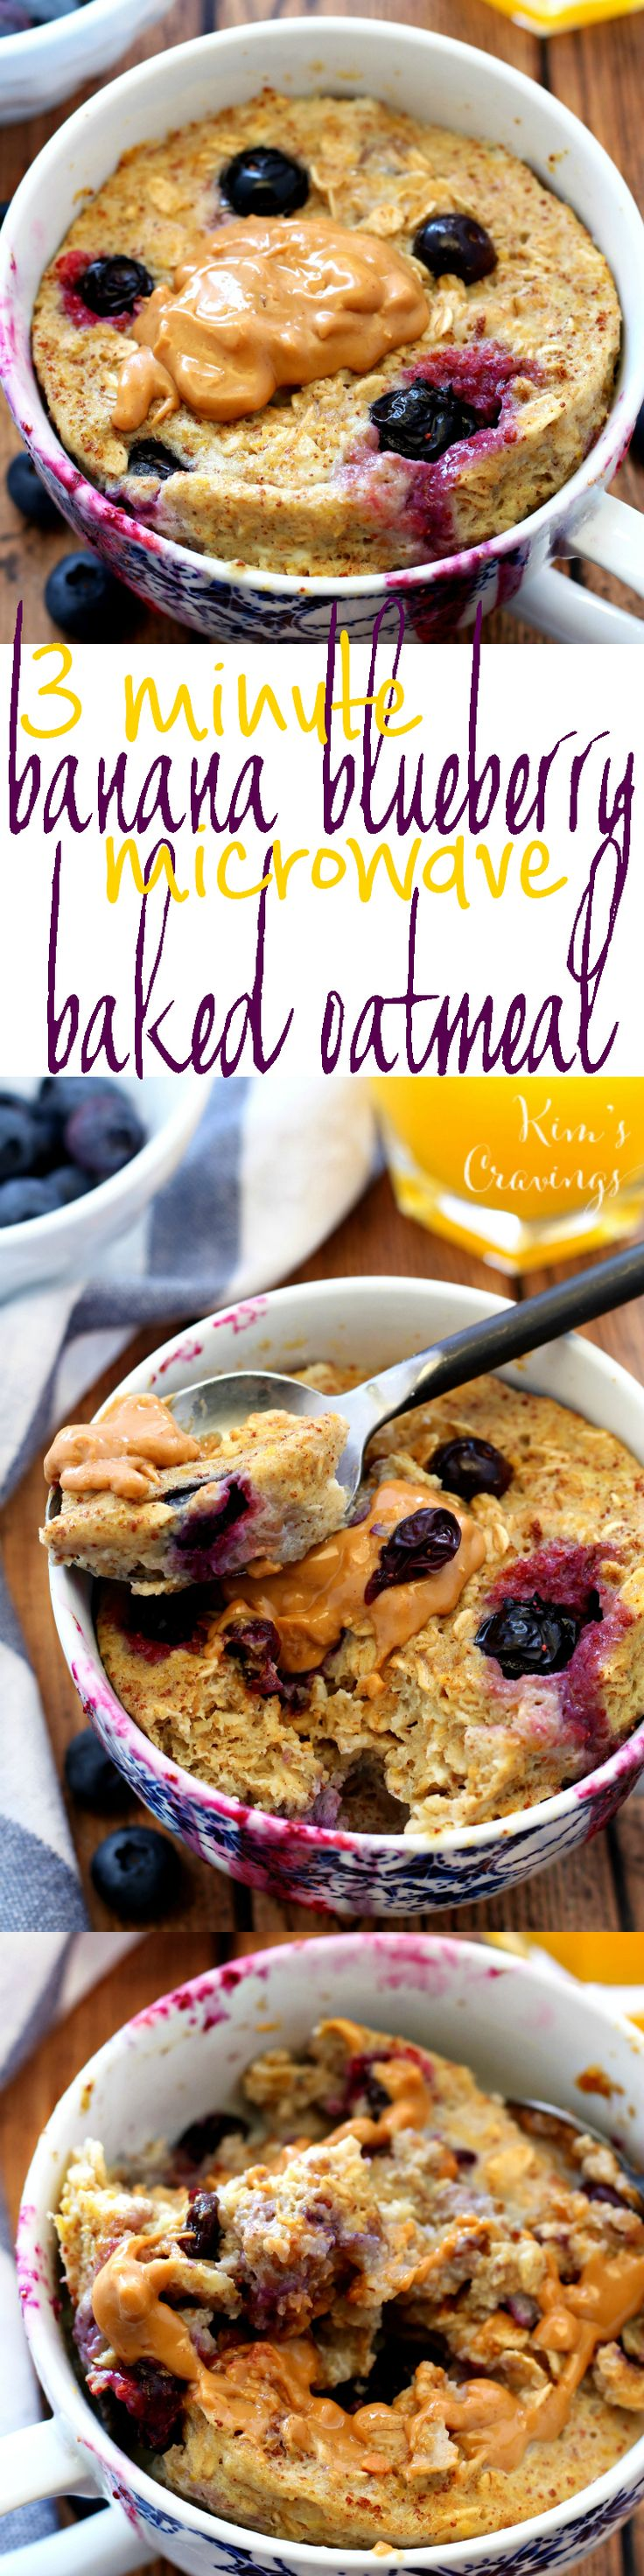 "3 Minute Blueberry Banana Microwave ""Baked"" Oatmeal in a Mug- a quick, easy and oh so scrumptious gluten-free breakfast!"